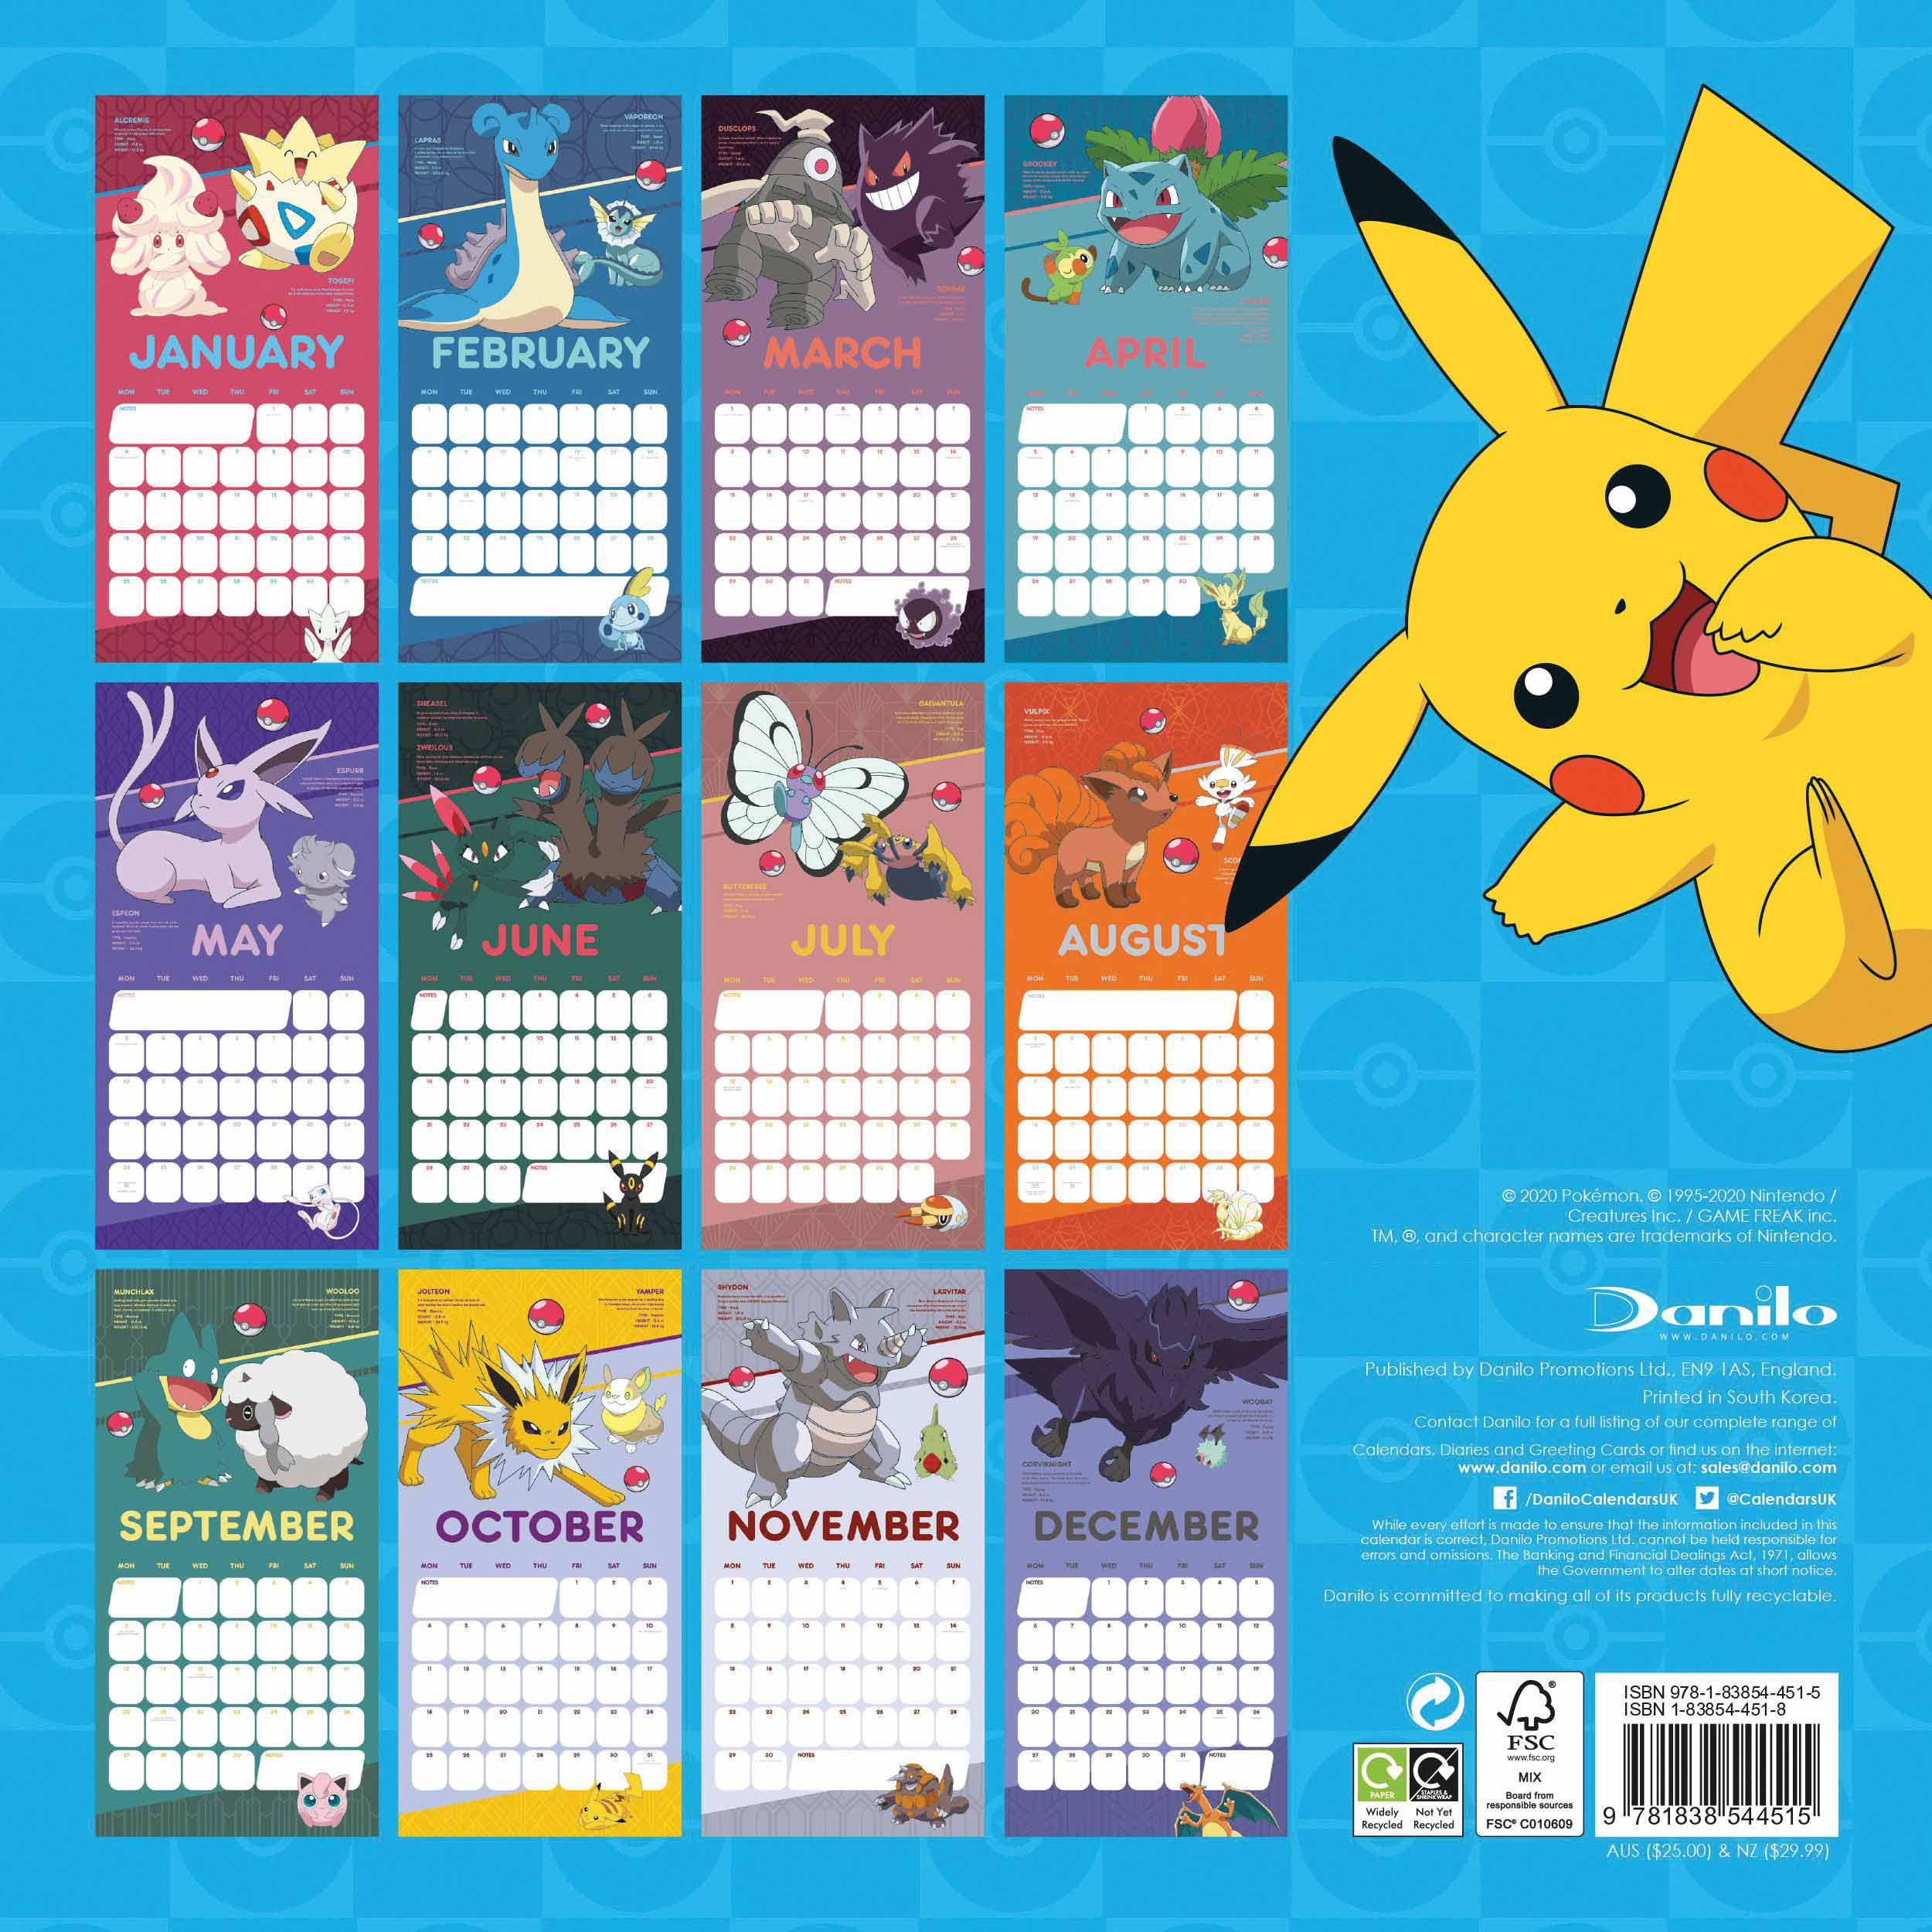 Pokémon Official Calendar 2021 At Calendar Club